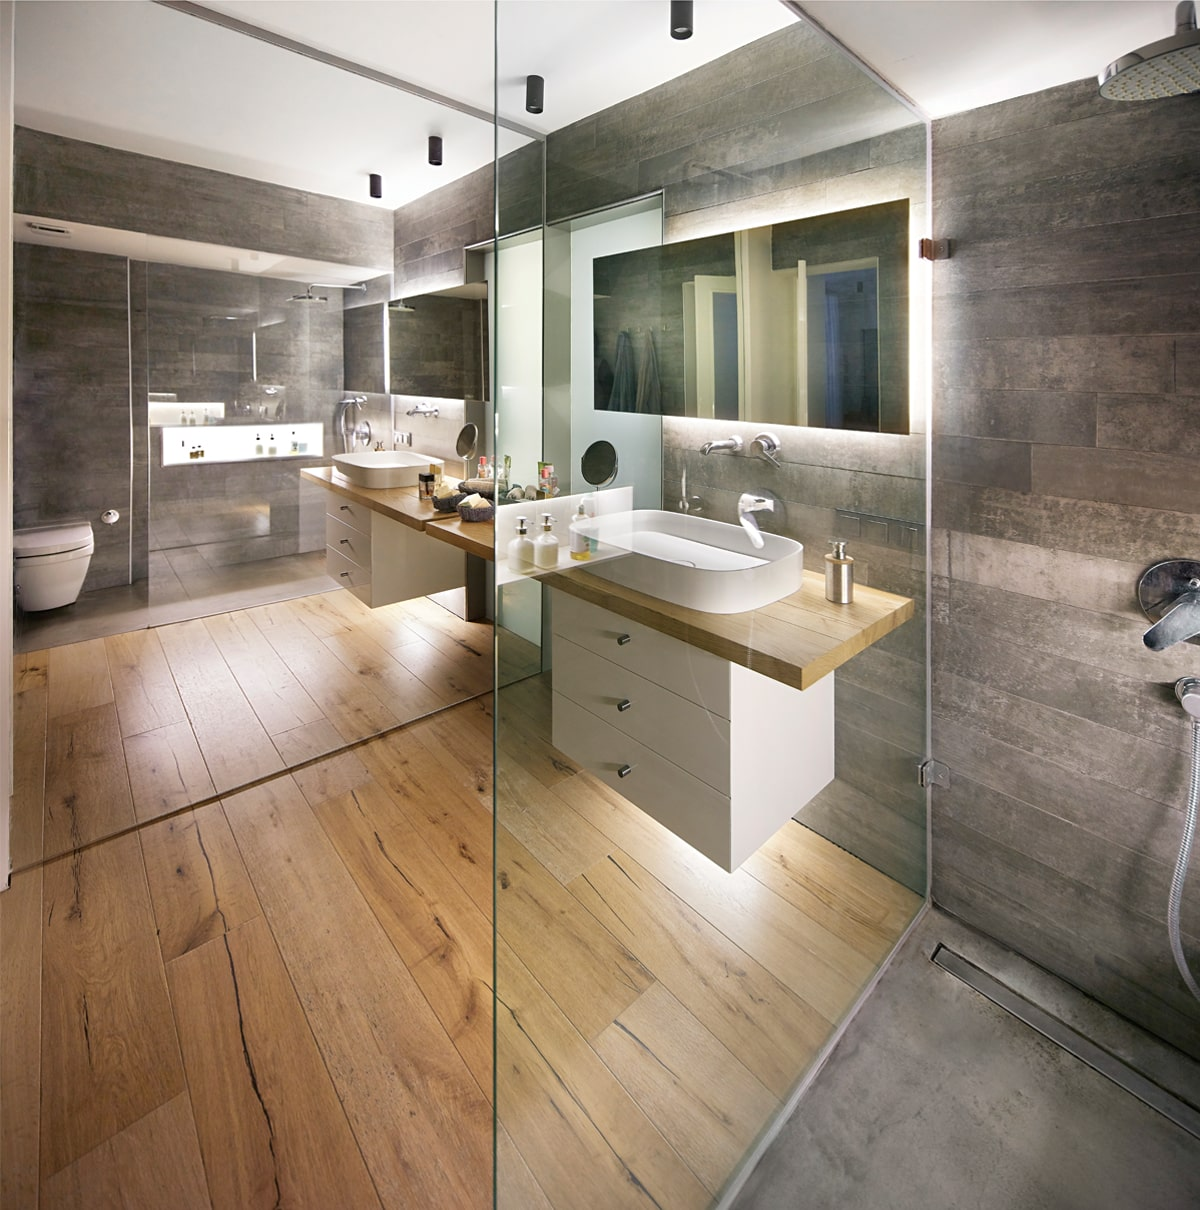 This other bathroom has a modern white floating vanity separated with glass walls from the toilet area and the shower area that has a gray floor.